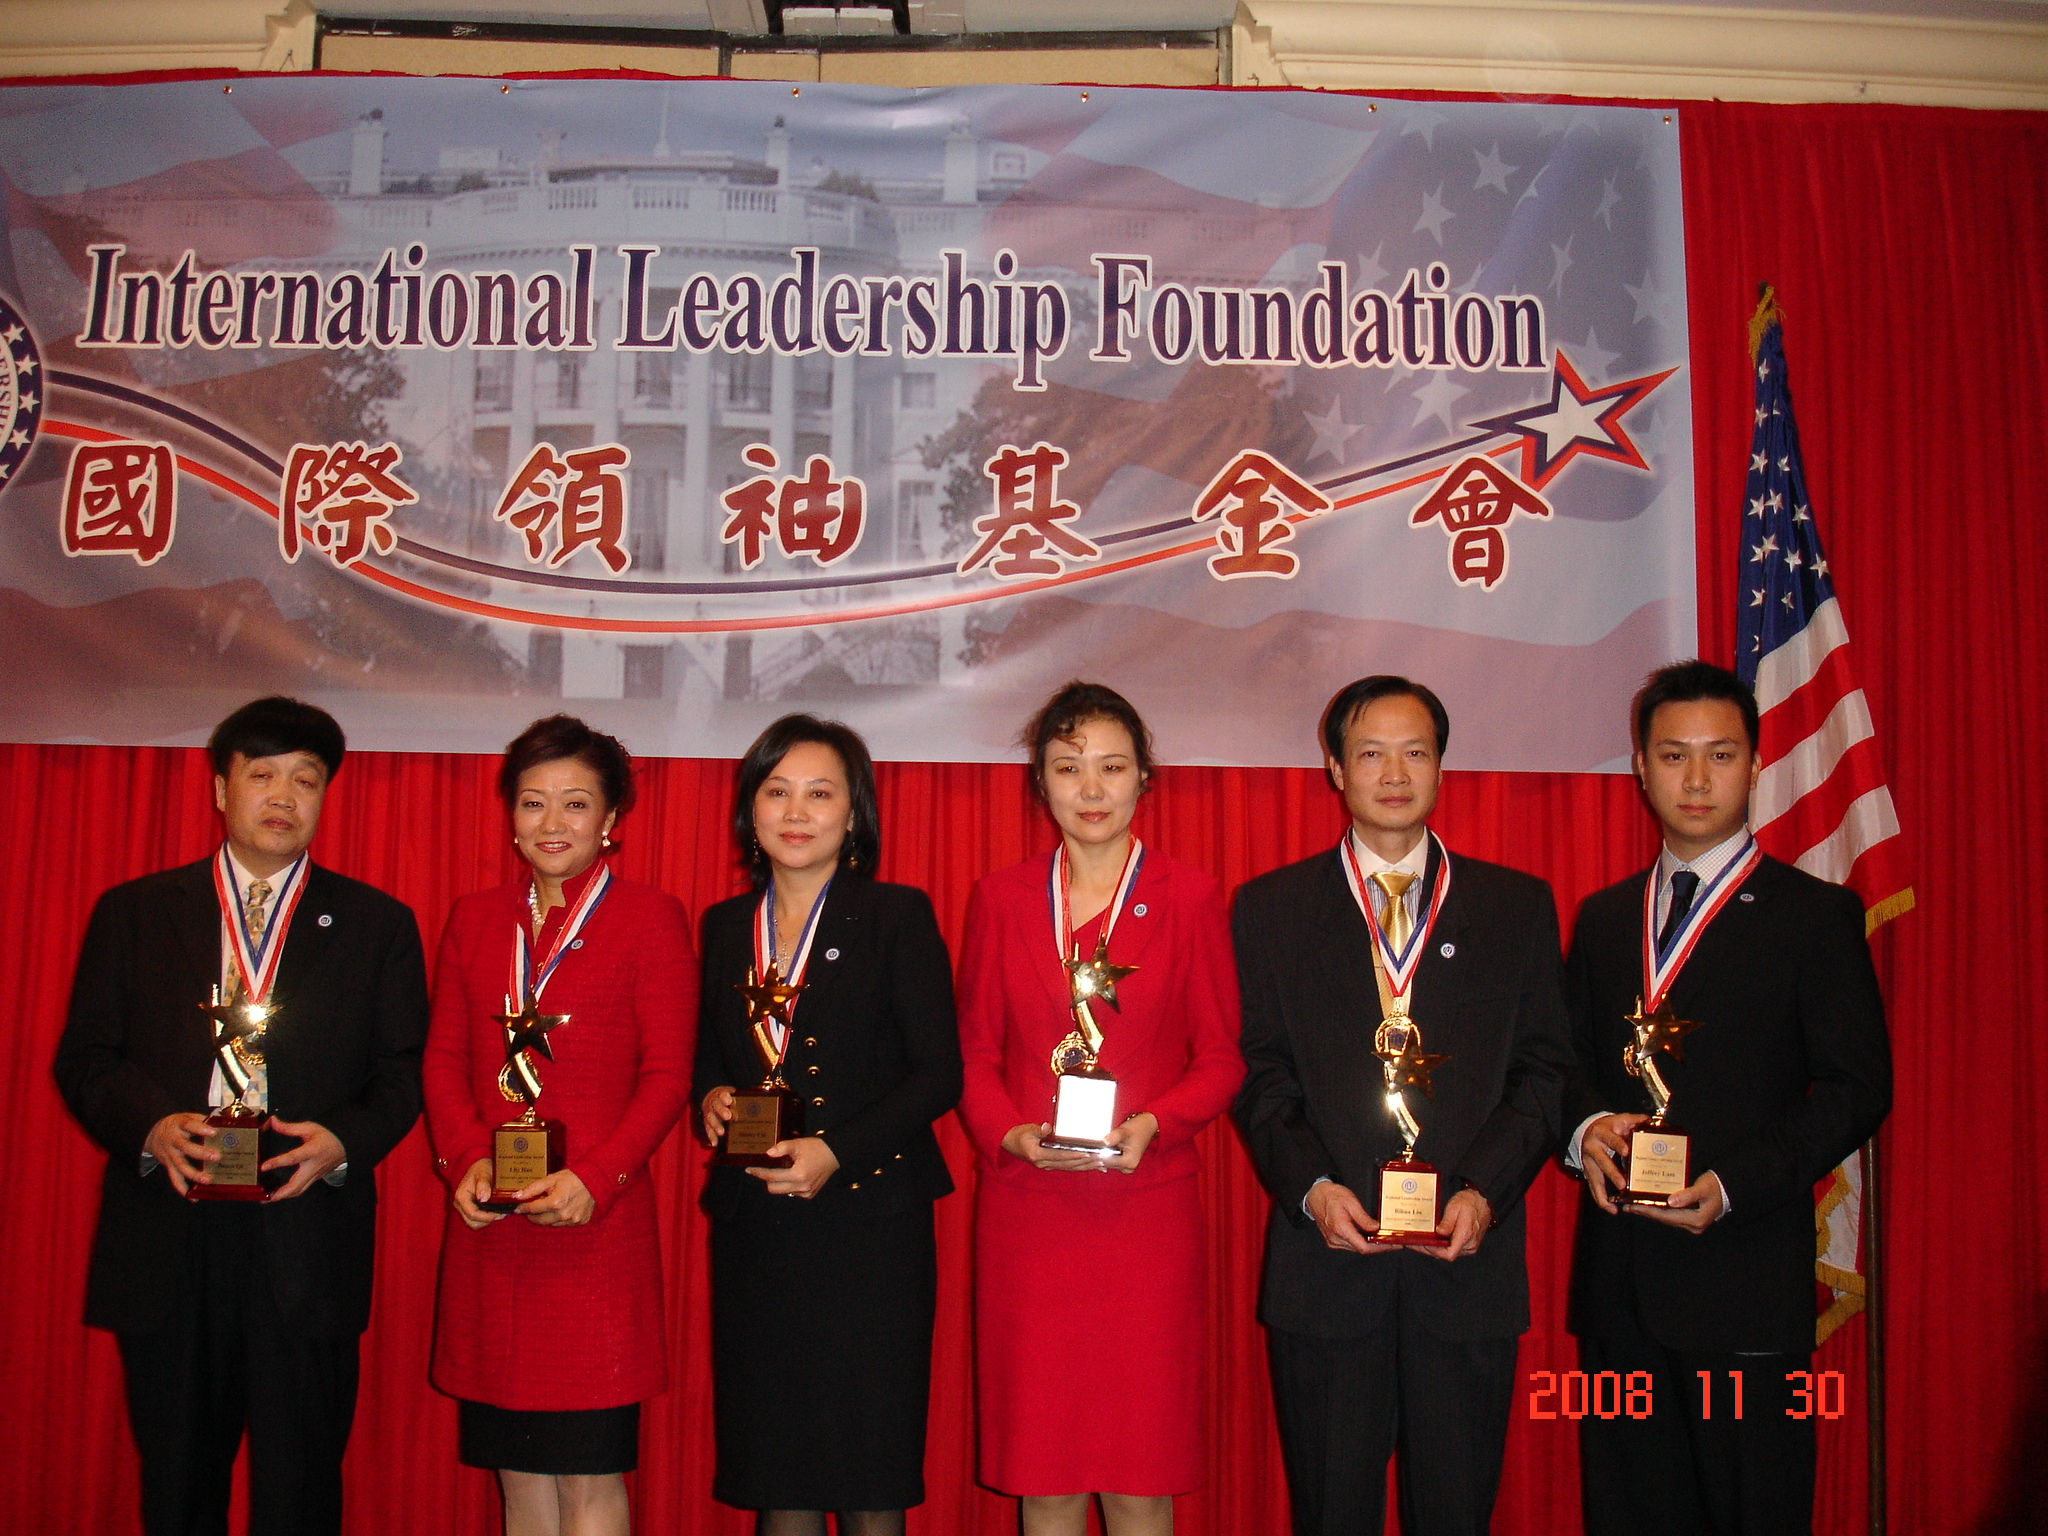 queens art education center ny president liu winning the international leadership achievement award in 2008 exhibition award